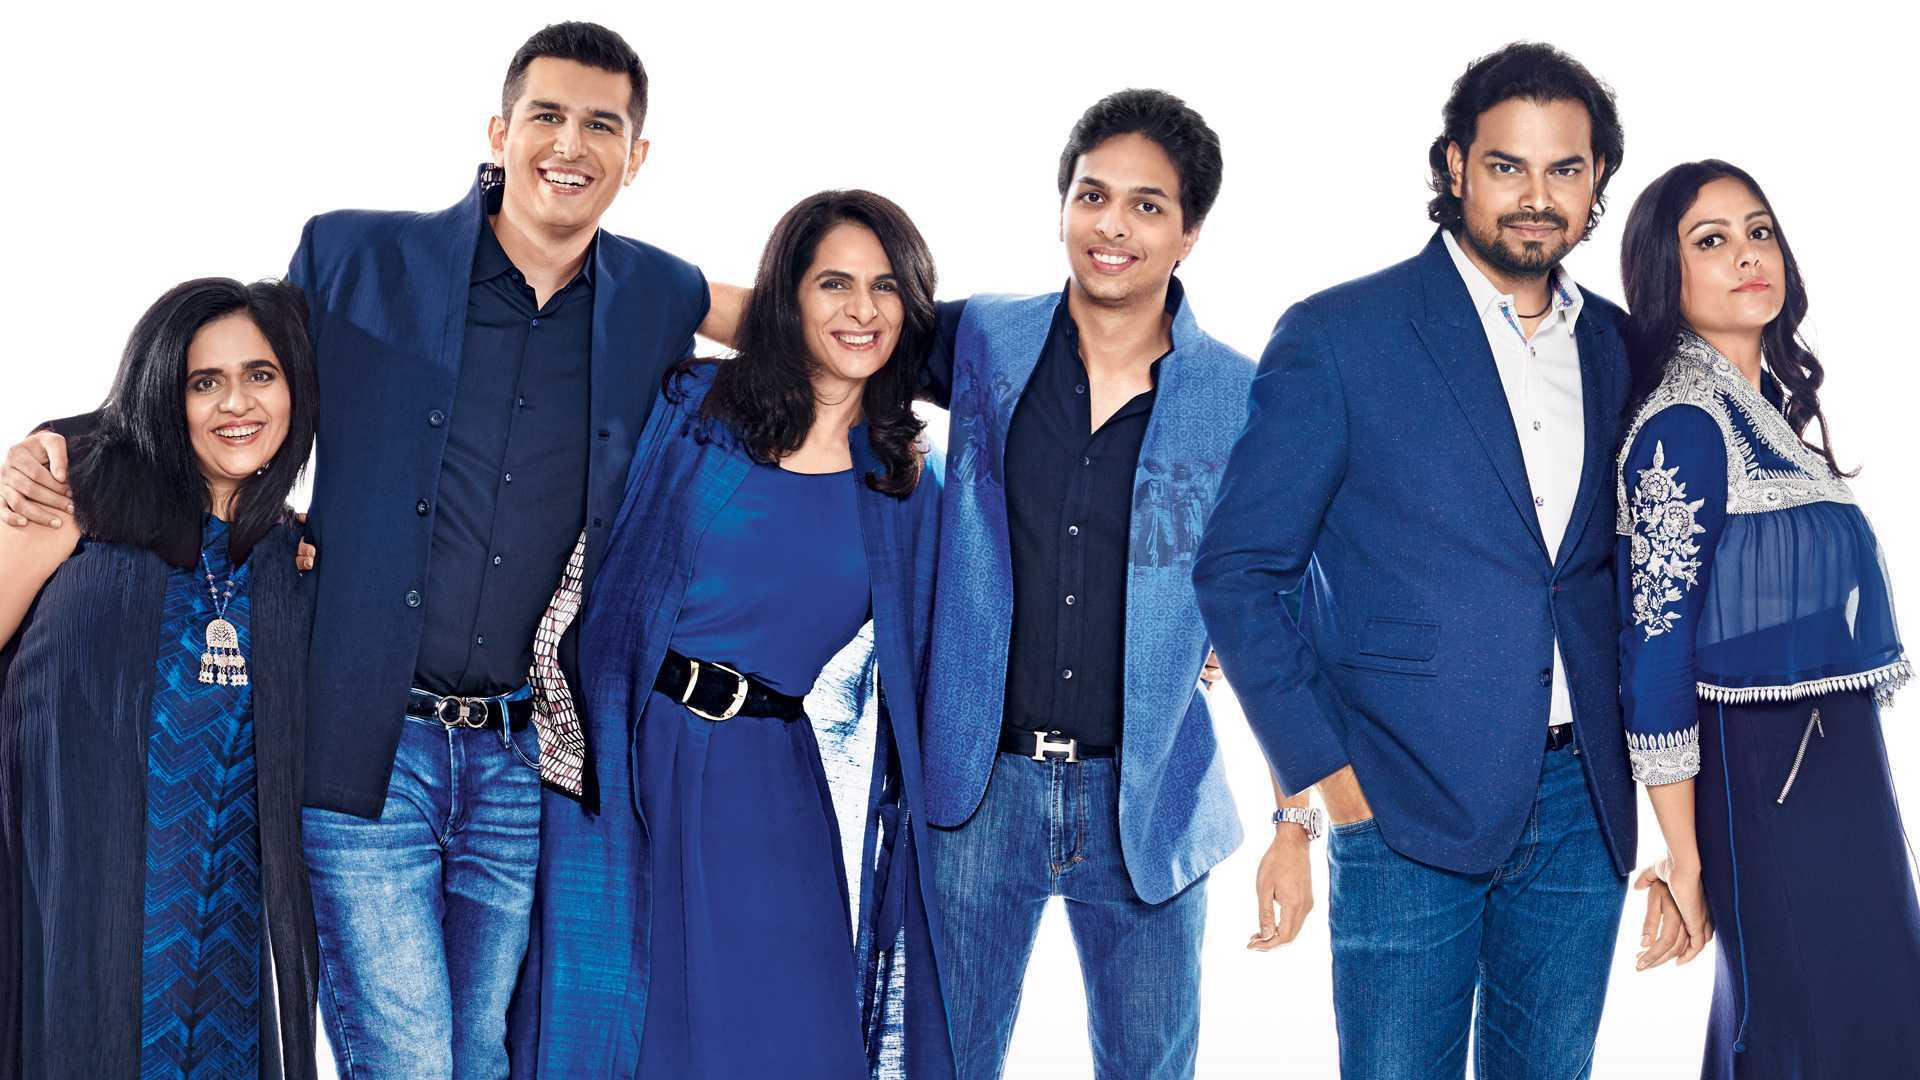 Get to know the families of these famous Indian designers  Vogue India  Fashion  Insider